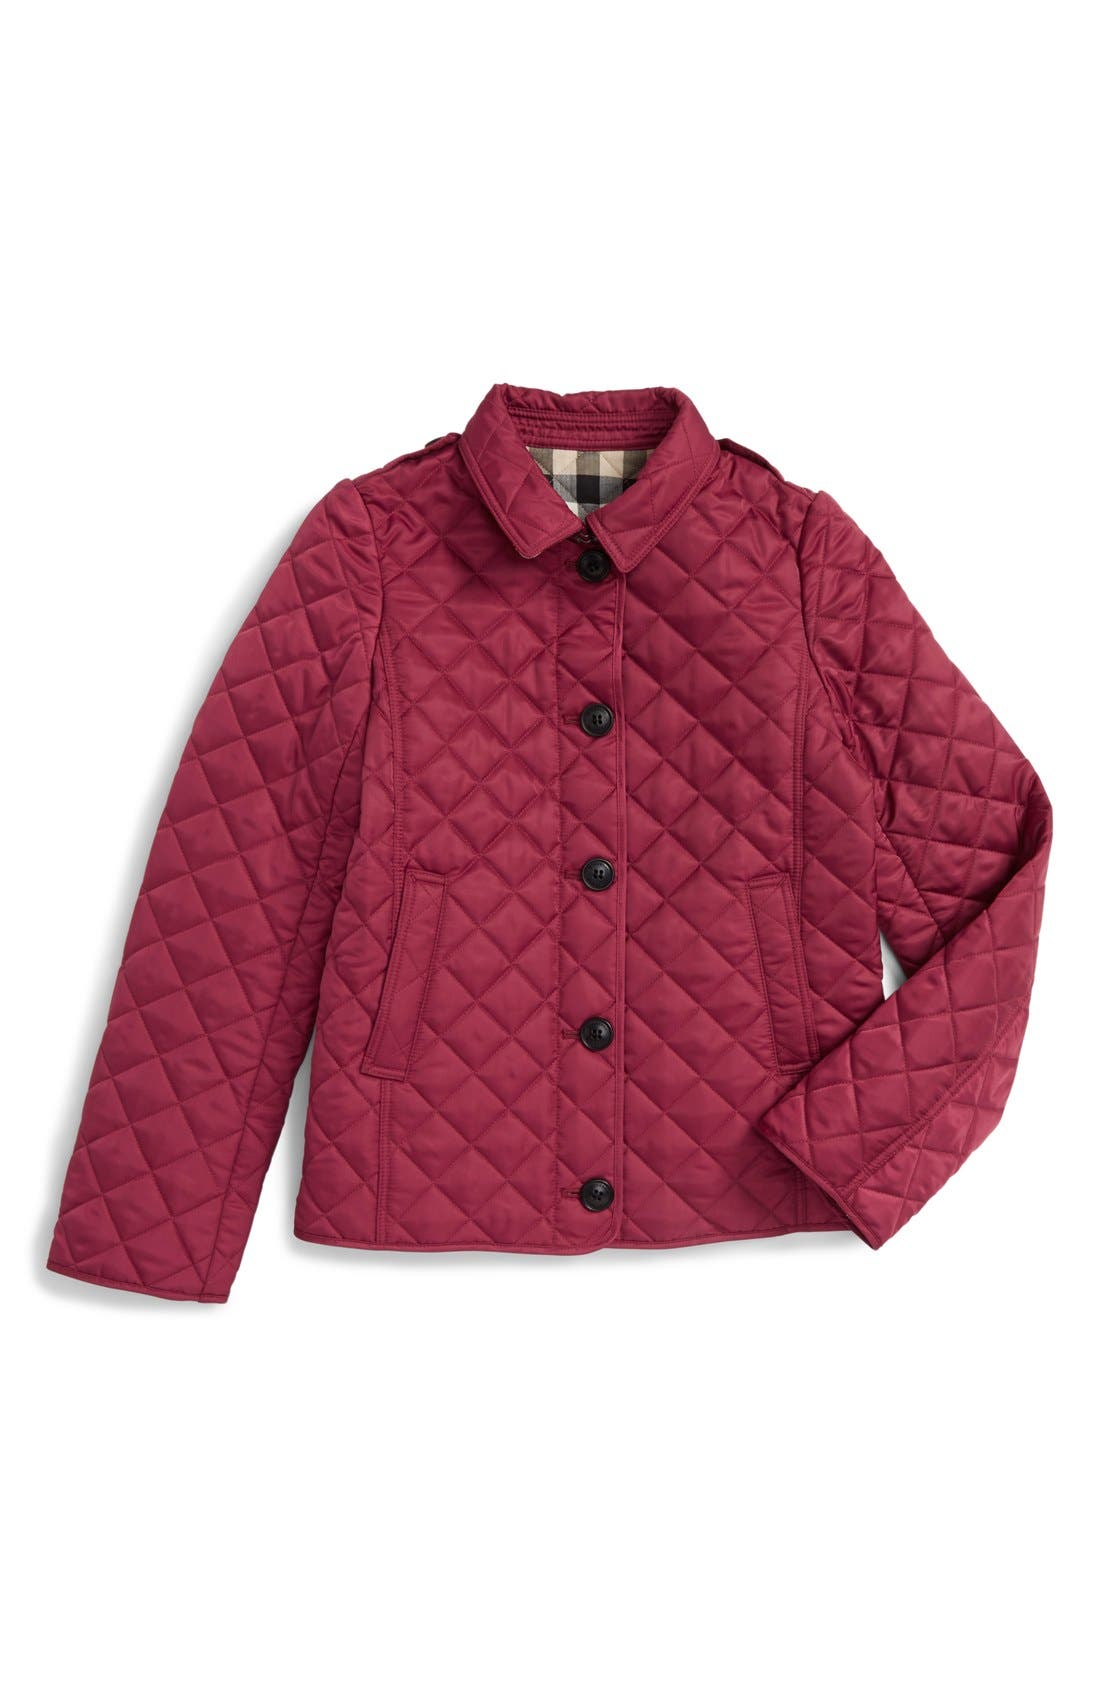 Burberry 3t jacket